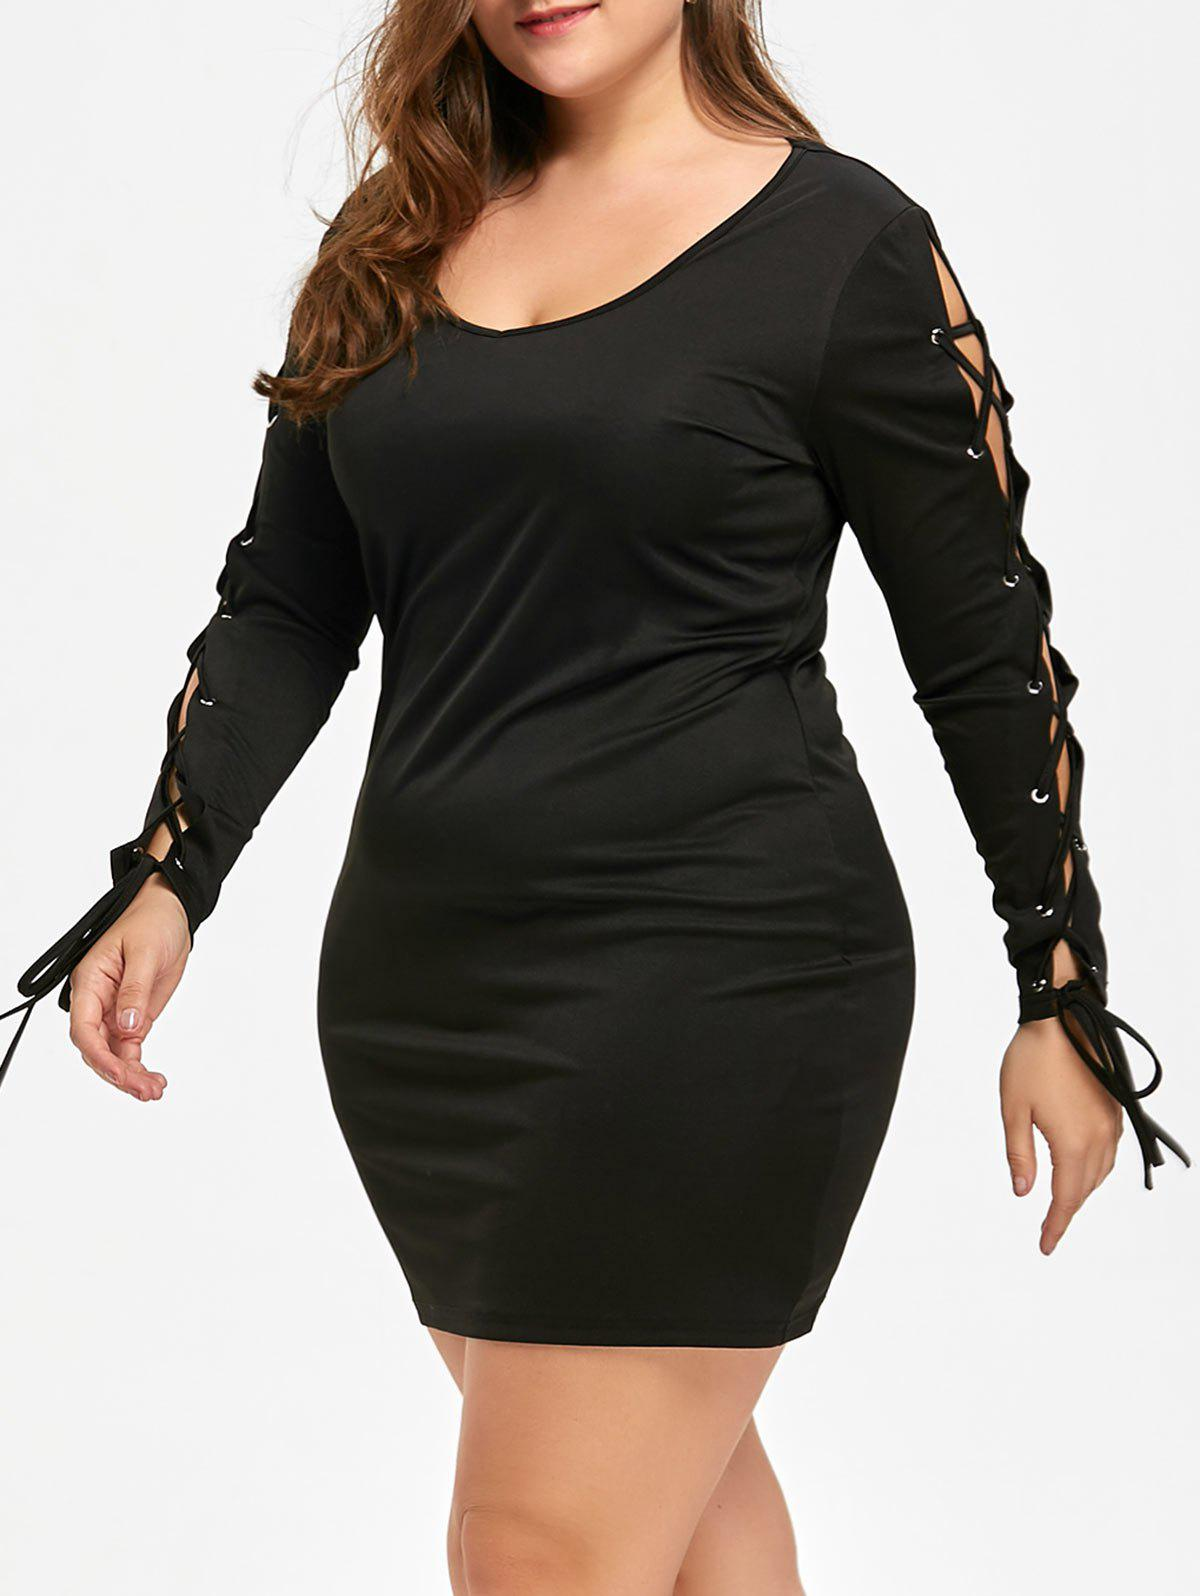 Plus Size Long Sleeve Lace Up Mini DressWOMEN<br><br>Size: XL; Color: BLACK; Style: Brief; Material: Polyester,Spandex; Silhouette: Sheath; Dresses Length: Mini; Neckline: Scoop Neck; Sleeve Length: Long Sleeves; Pattern Type: Solid Color; With Belt: No; Season: Fall,Spring; Weight: 0.3200kg; Package Contents: 1 x Dress;